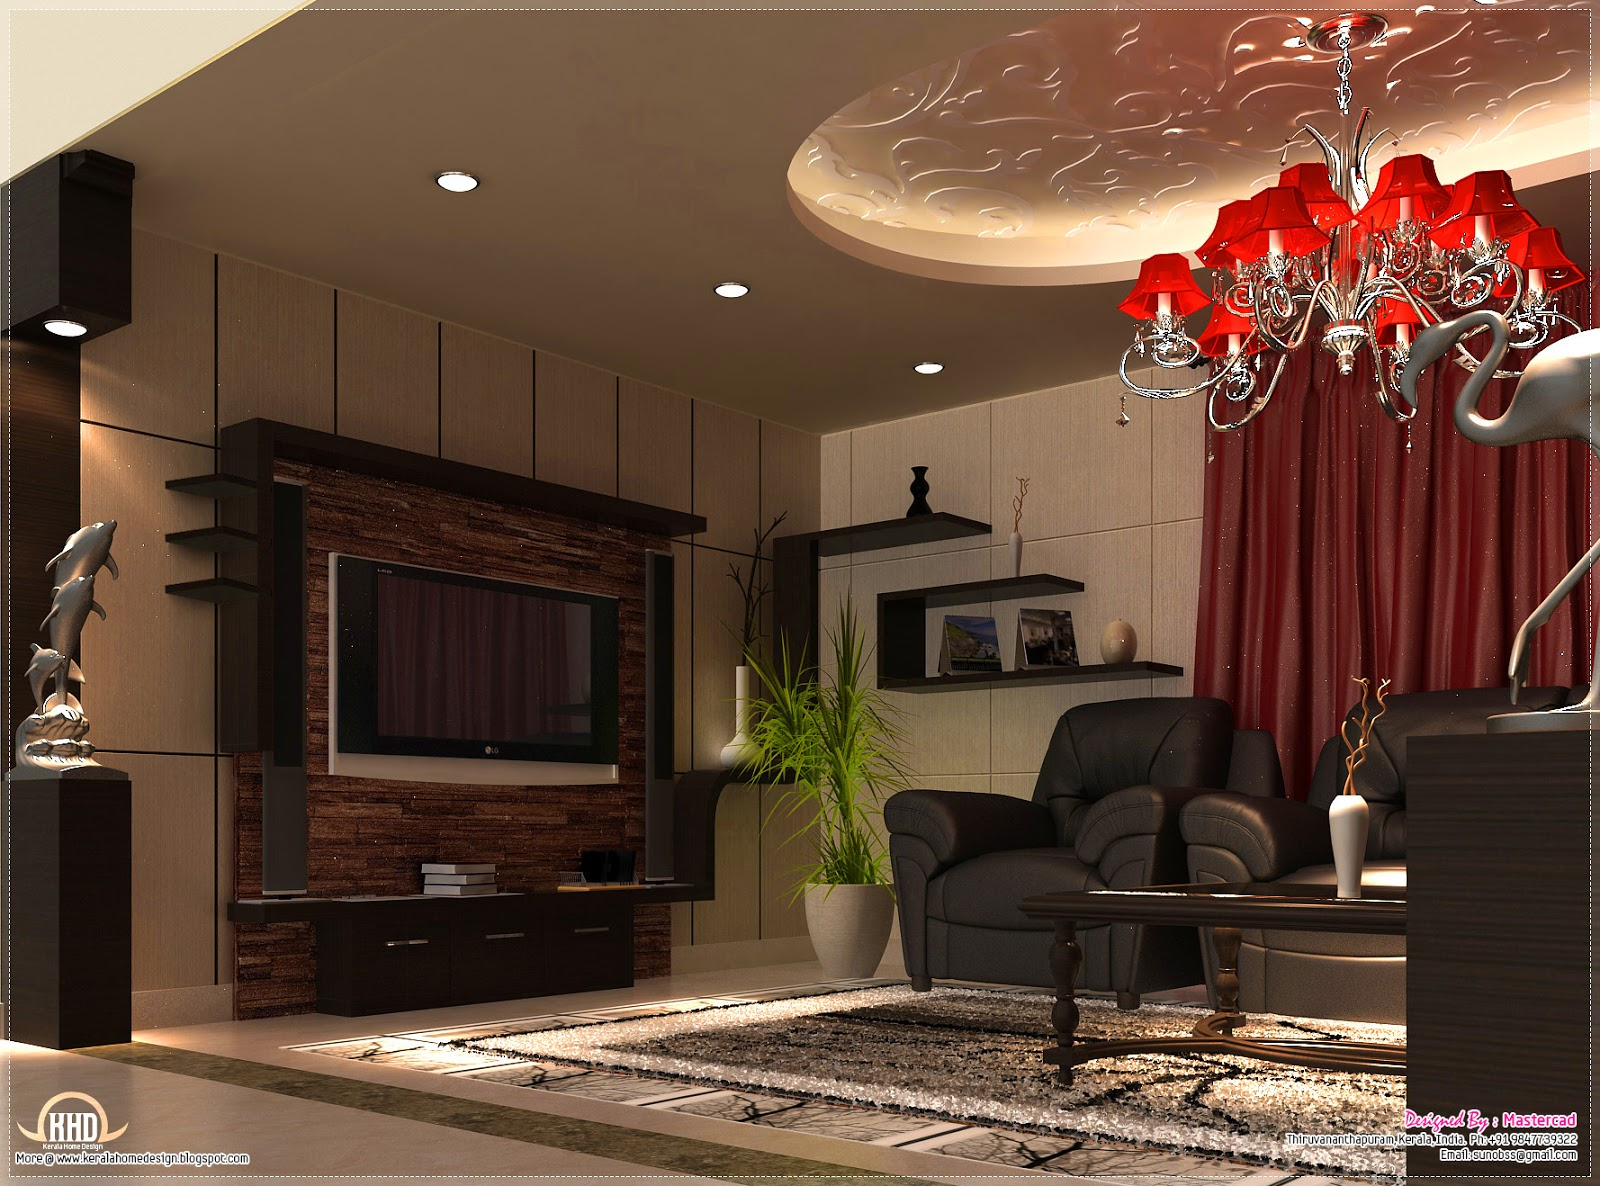 Interior design ideas kerala home design and floor plans for Simple living room designs in india